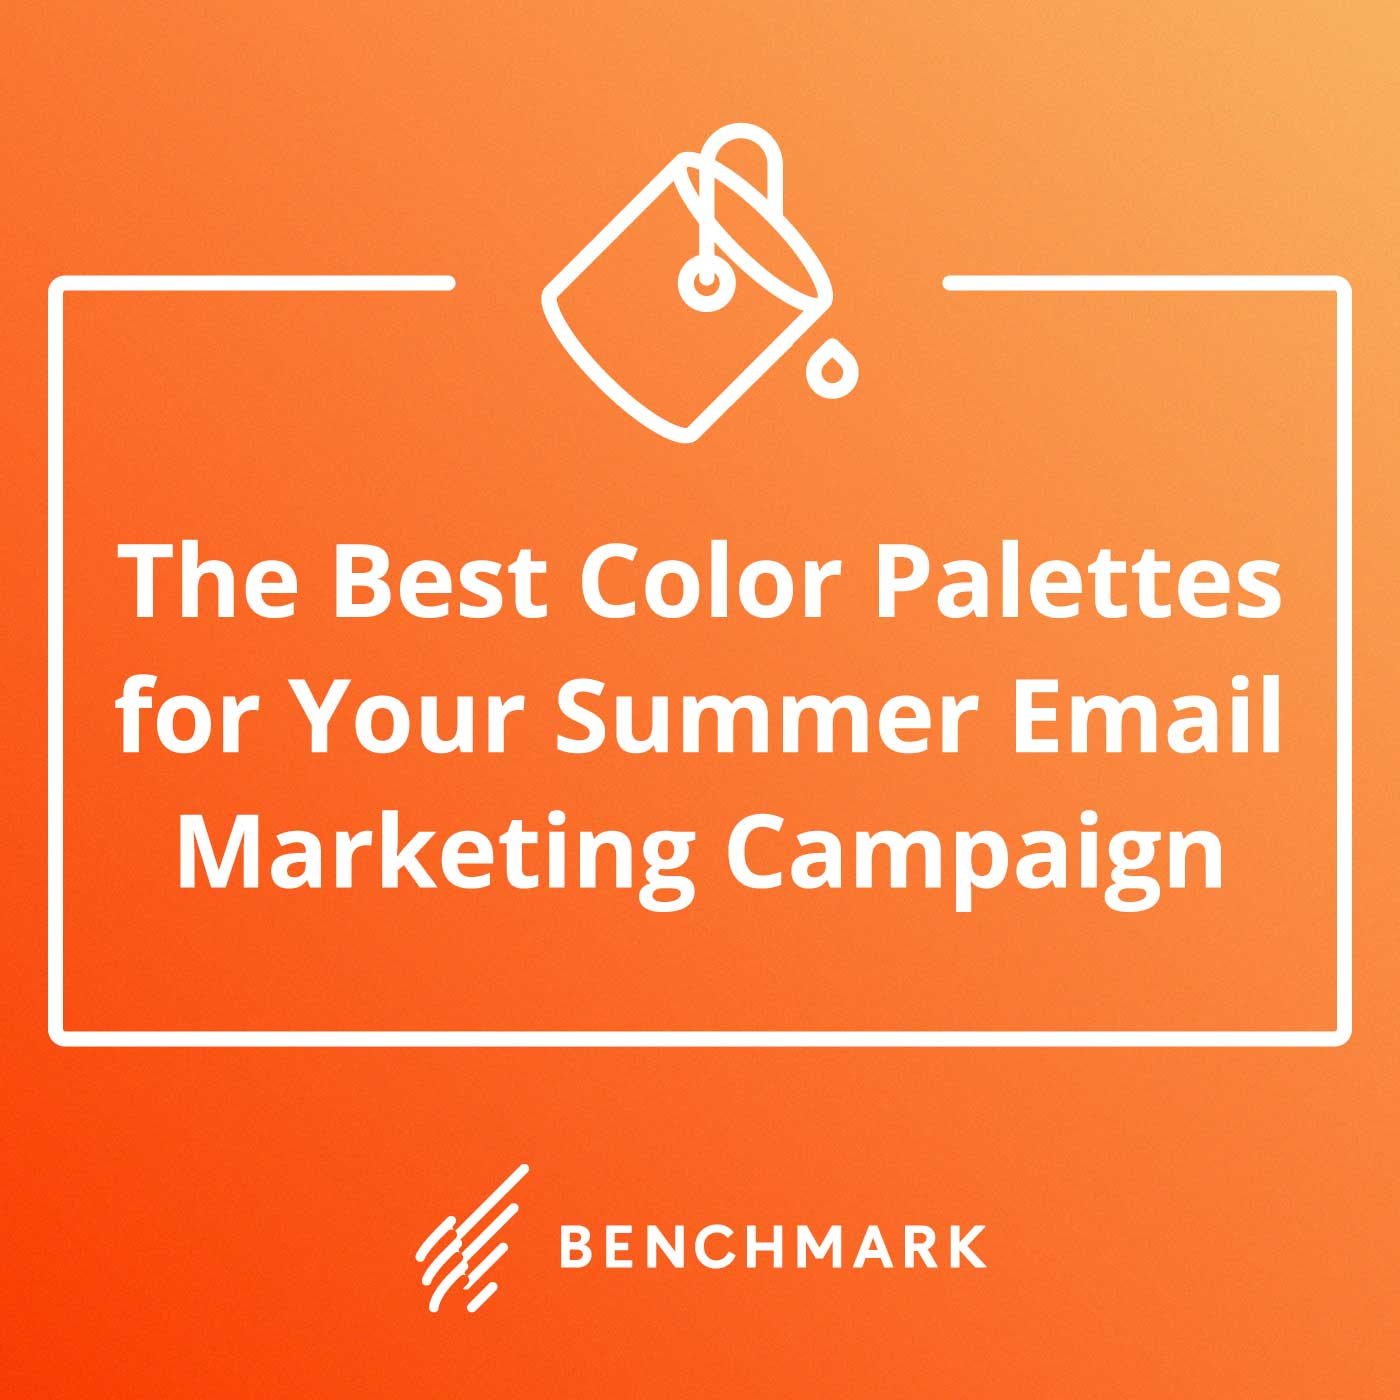 5 Fashion-Inspired Color Palettes for Your Summer Email Marketing Campaigns